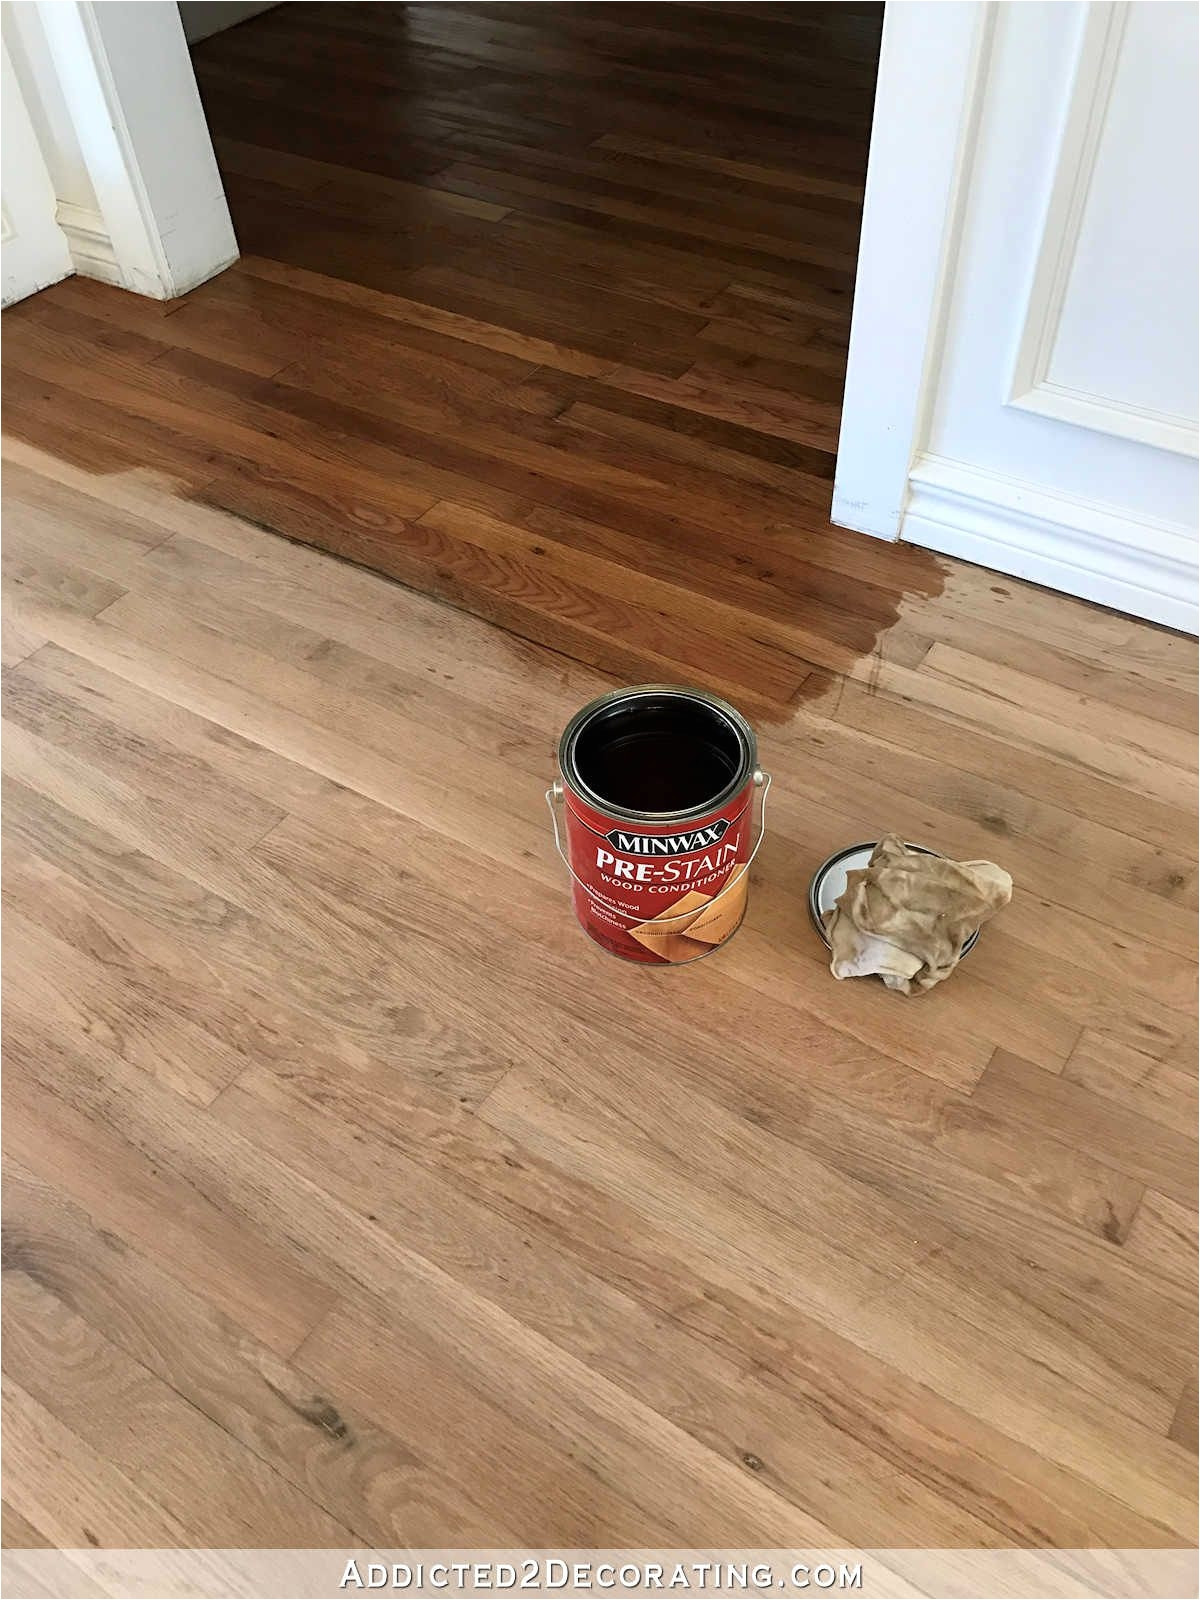 bruce red oak hardwood flooring of image of how to deep clean my hardwood floors the best way to clean with can you deep clean hardwood floors adventures in staining my red oak